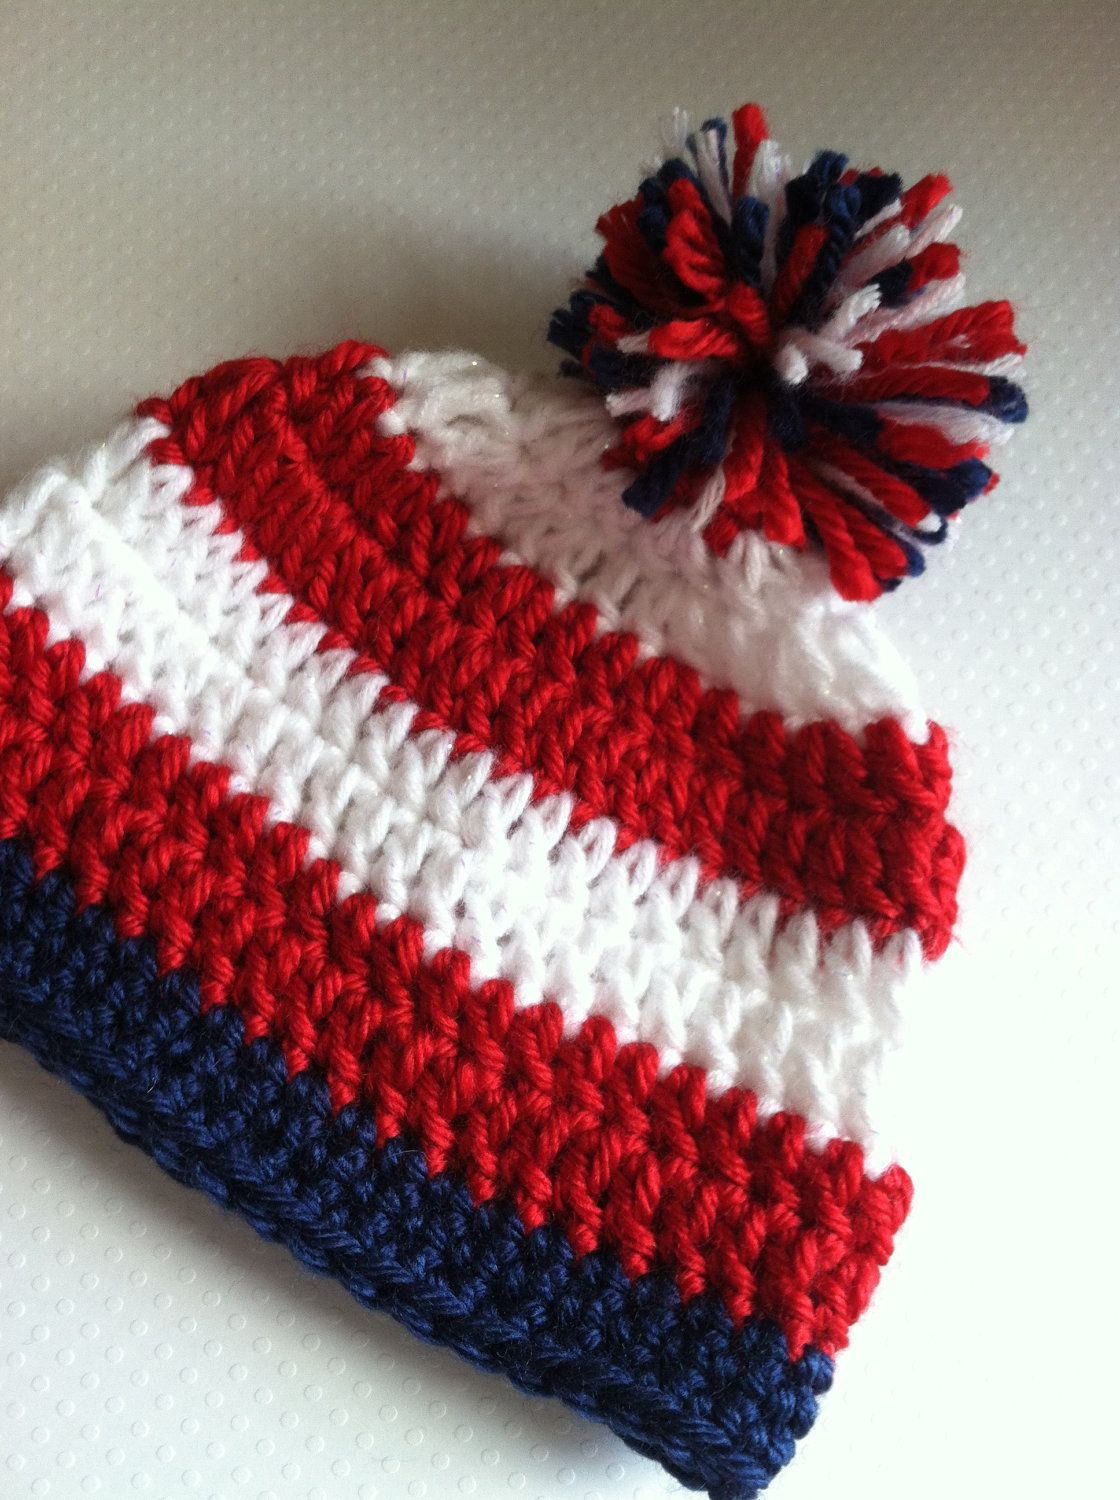 c92cff88fa8 Patriotic Crochet Hat Baby Red White Blue Flag Stripes PomPom Preemie to 2  Year Old Photography Photo Prop.  12.00